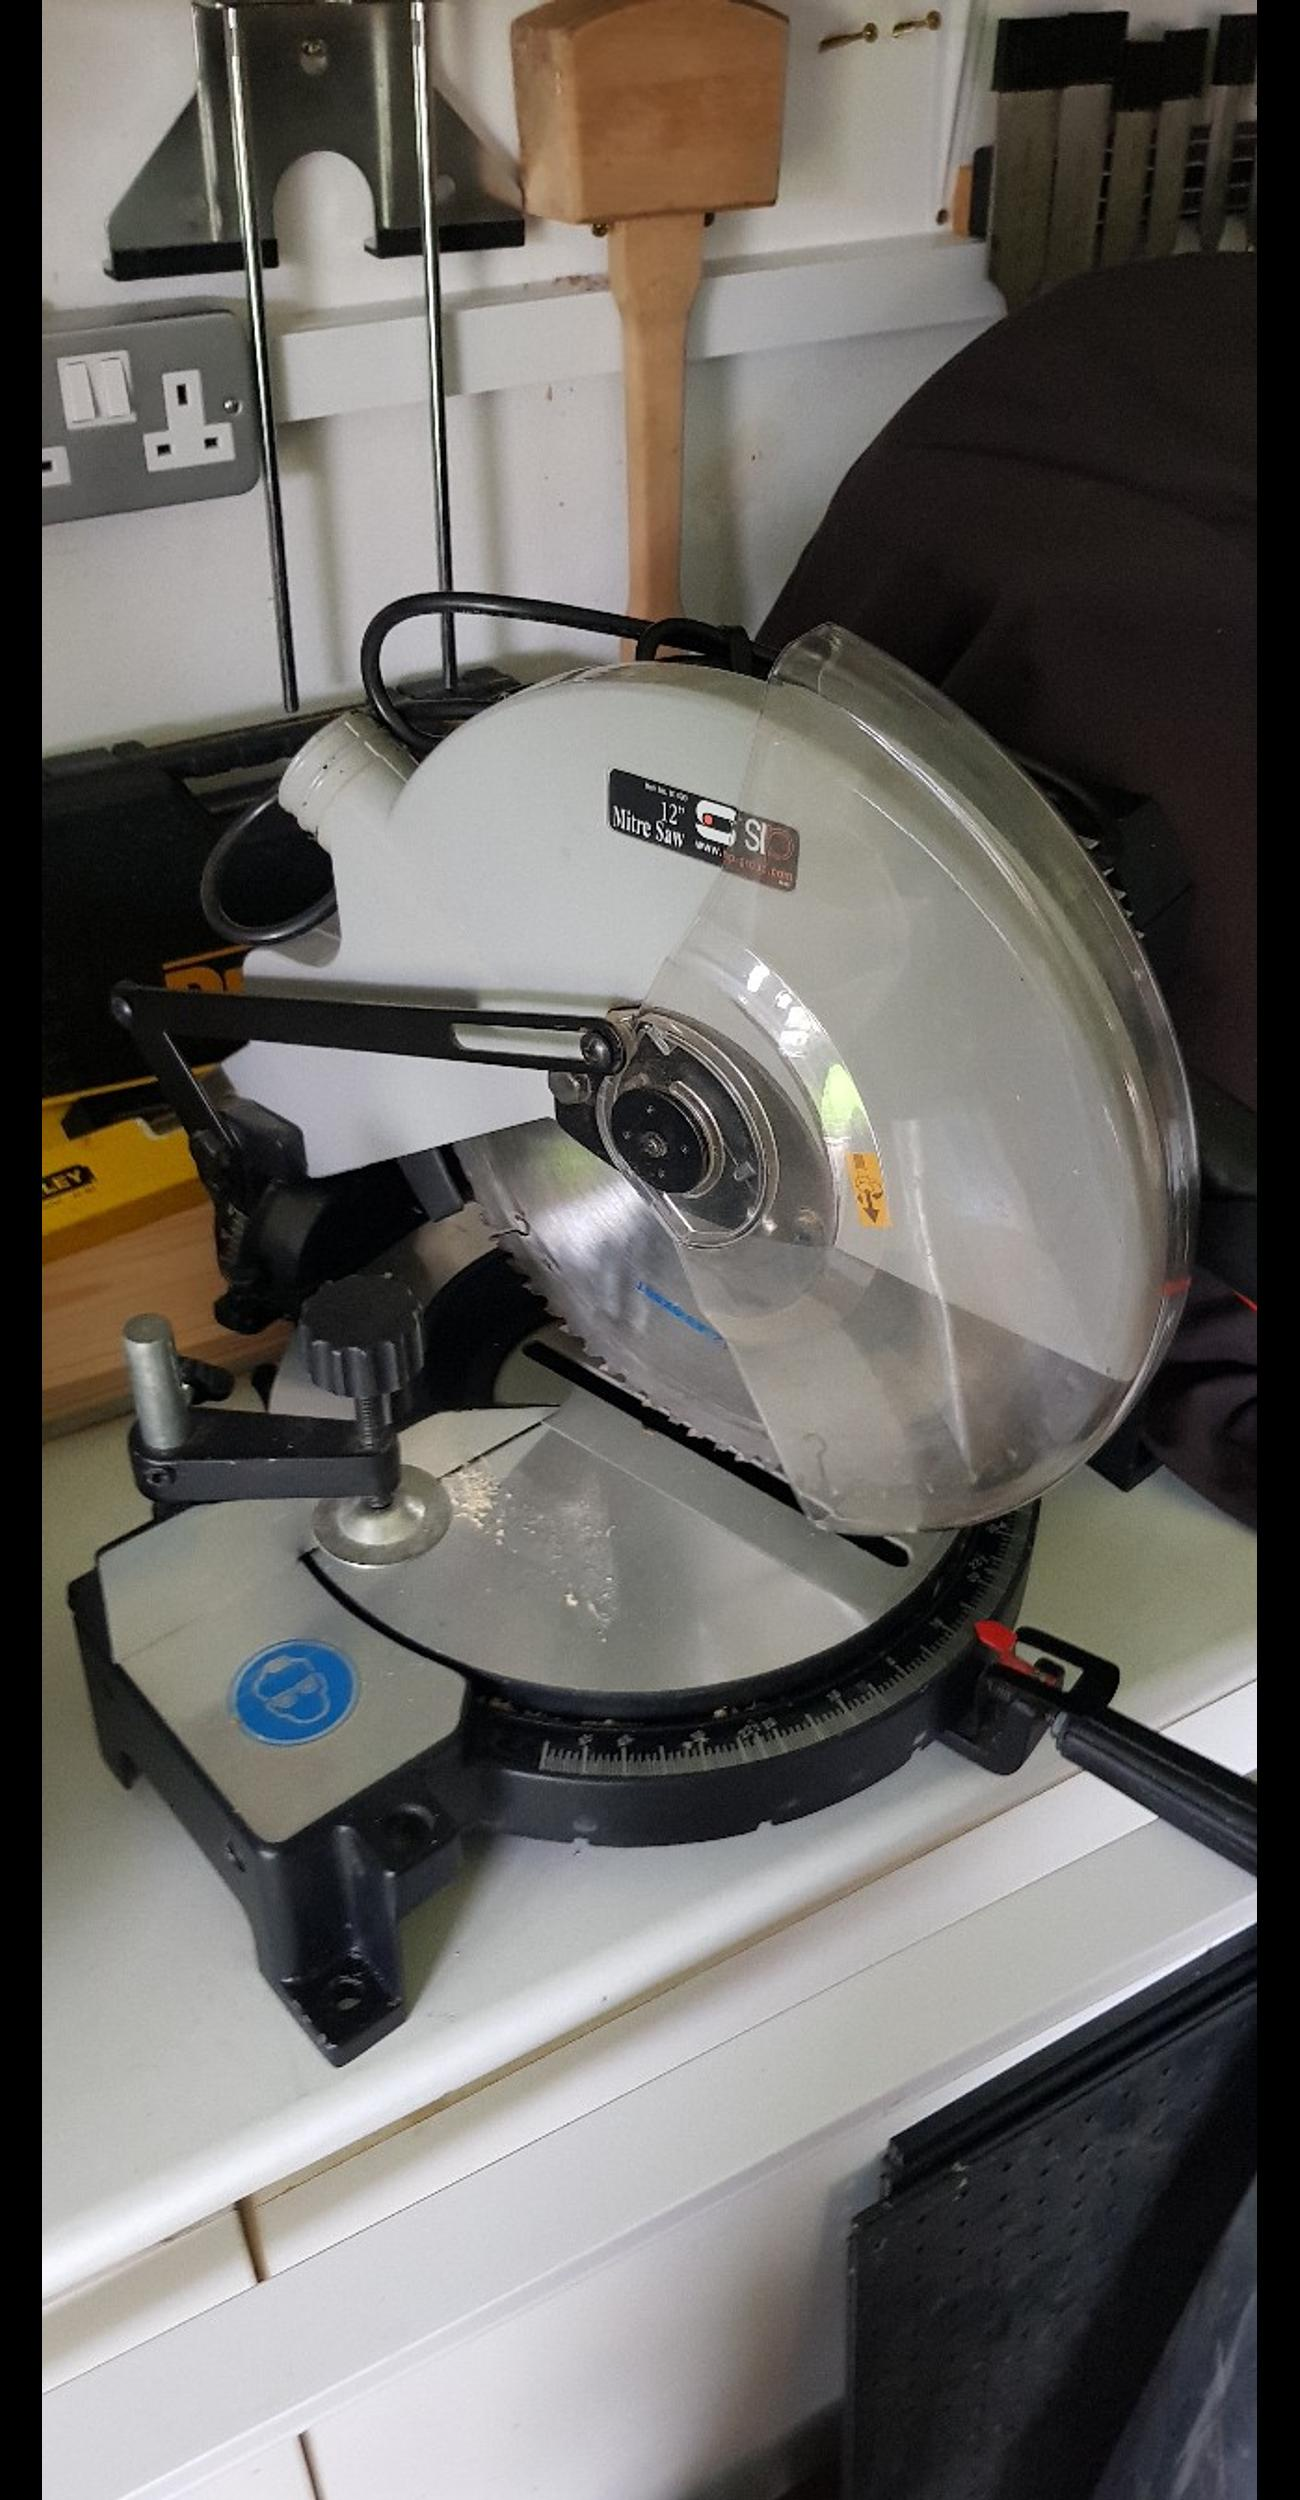 Woodworking Tools In Ch49 Wirral For 925 00 For Sale Shpock